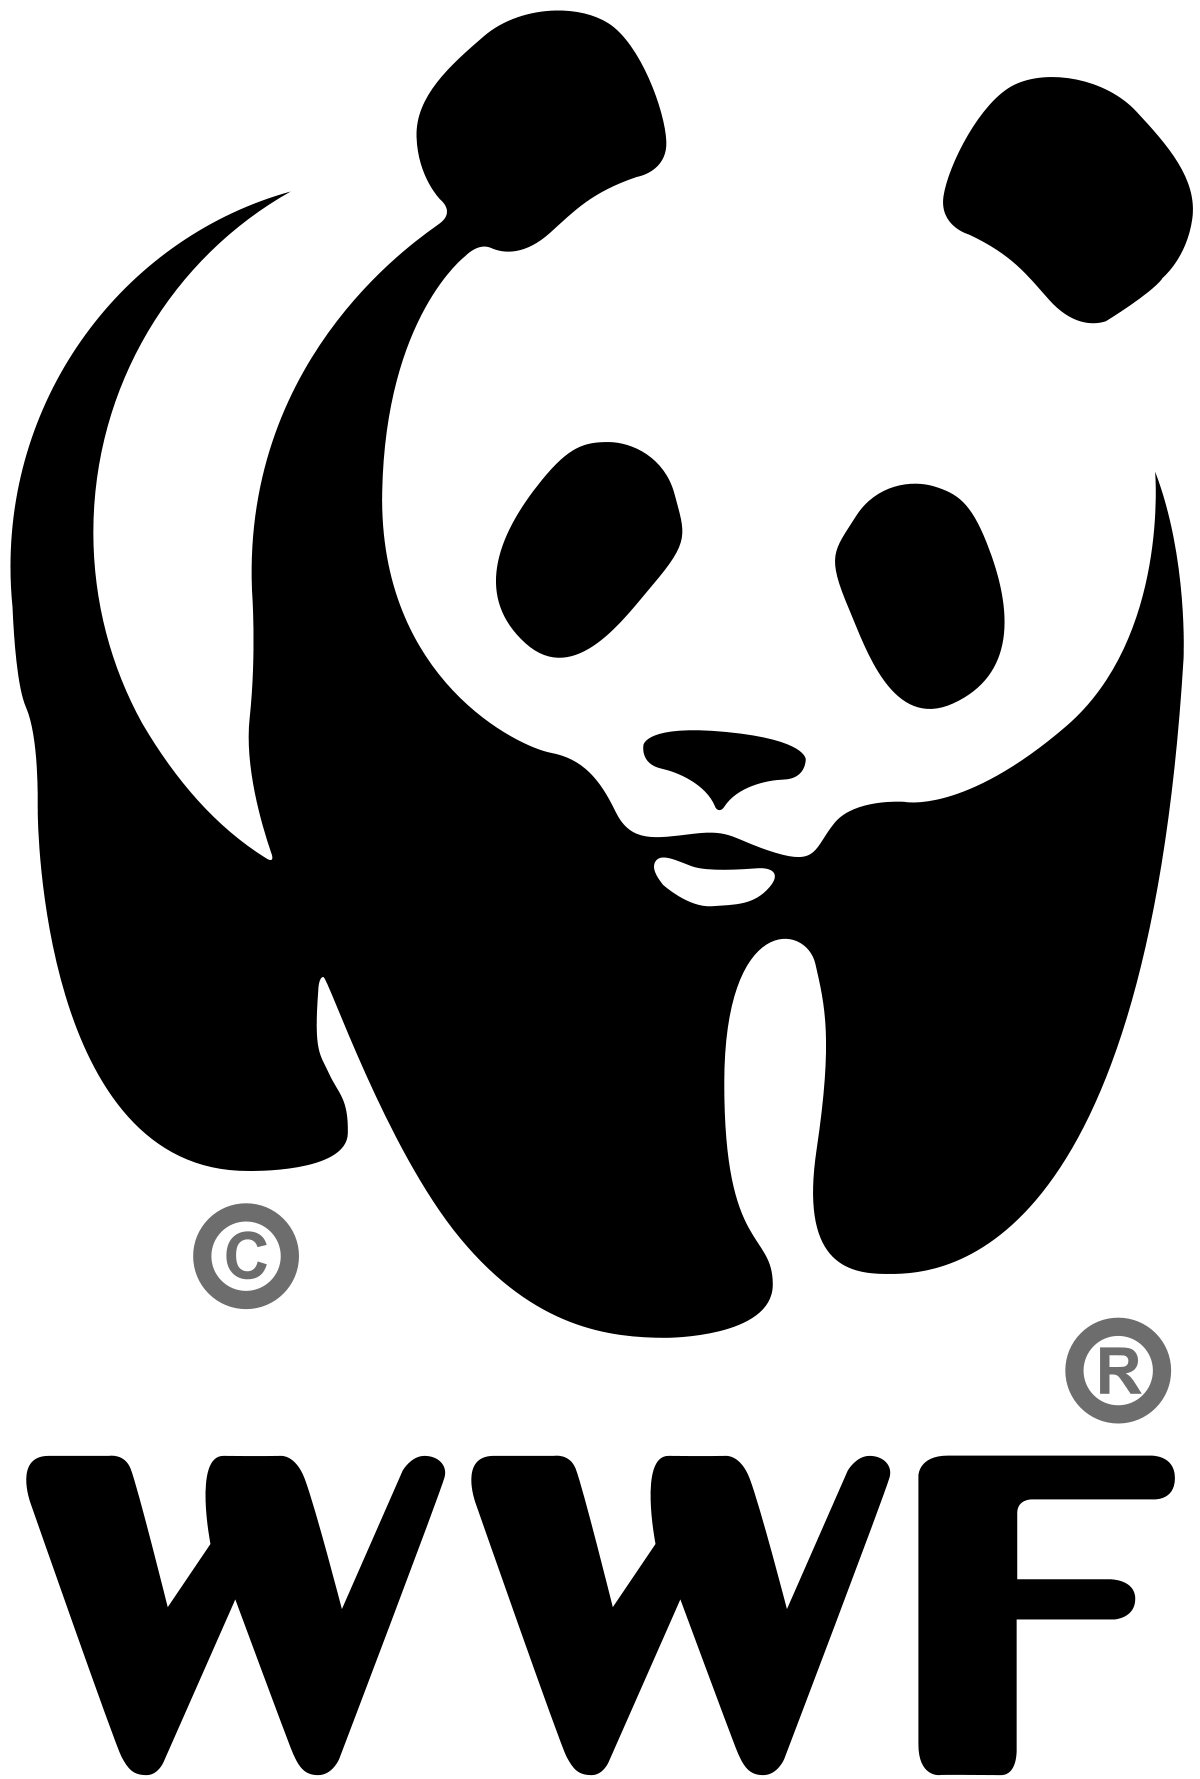 WWF Logo - World Wide Fund for Nature